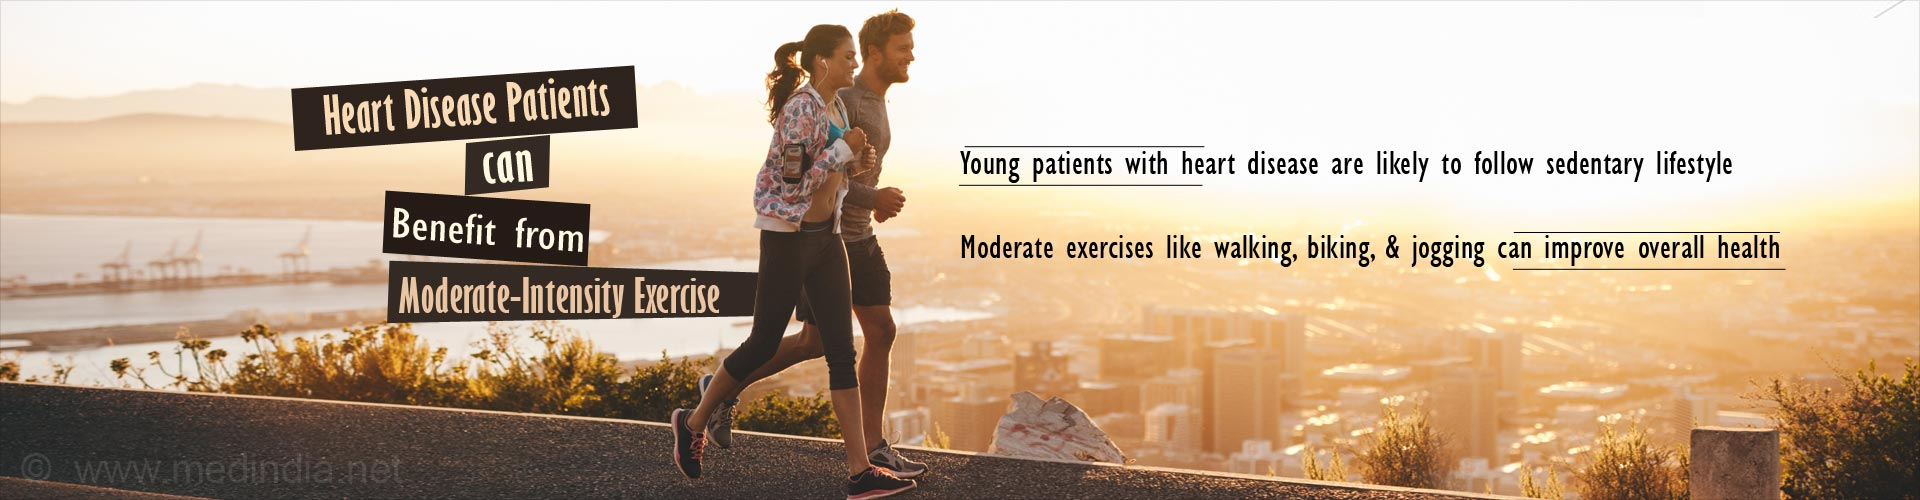 heart disease patients can benefit from moderate-intensity exercise